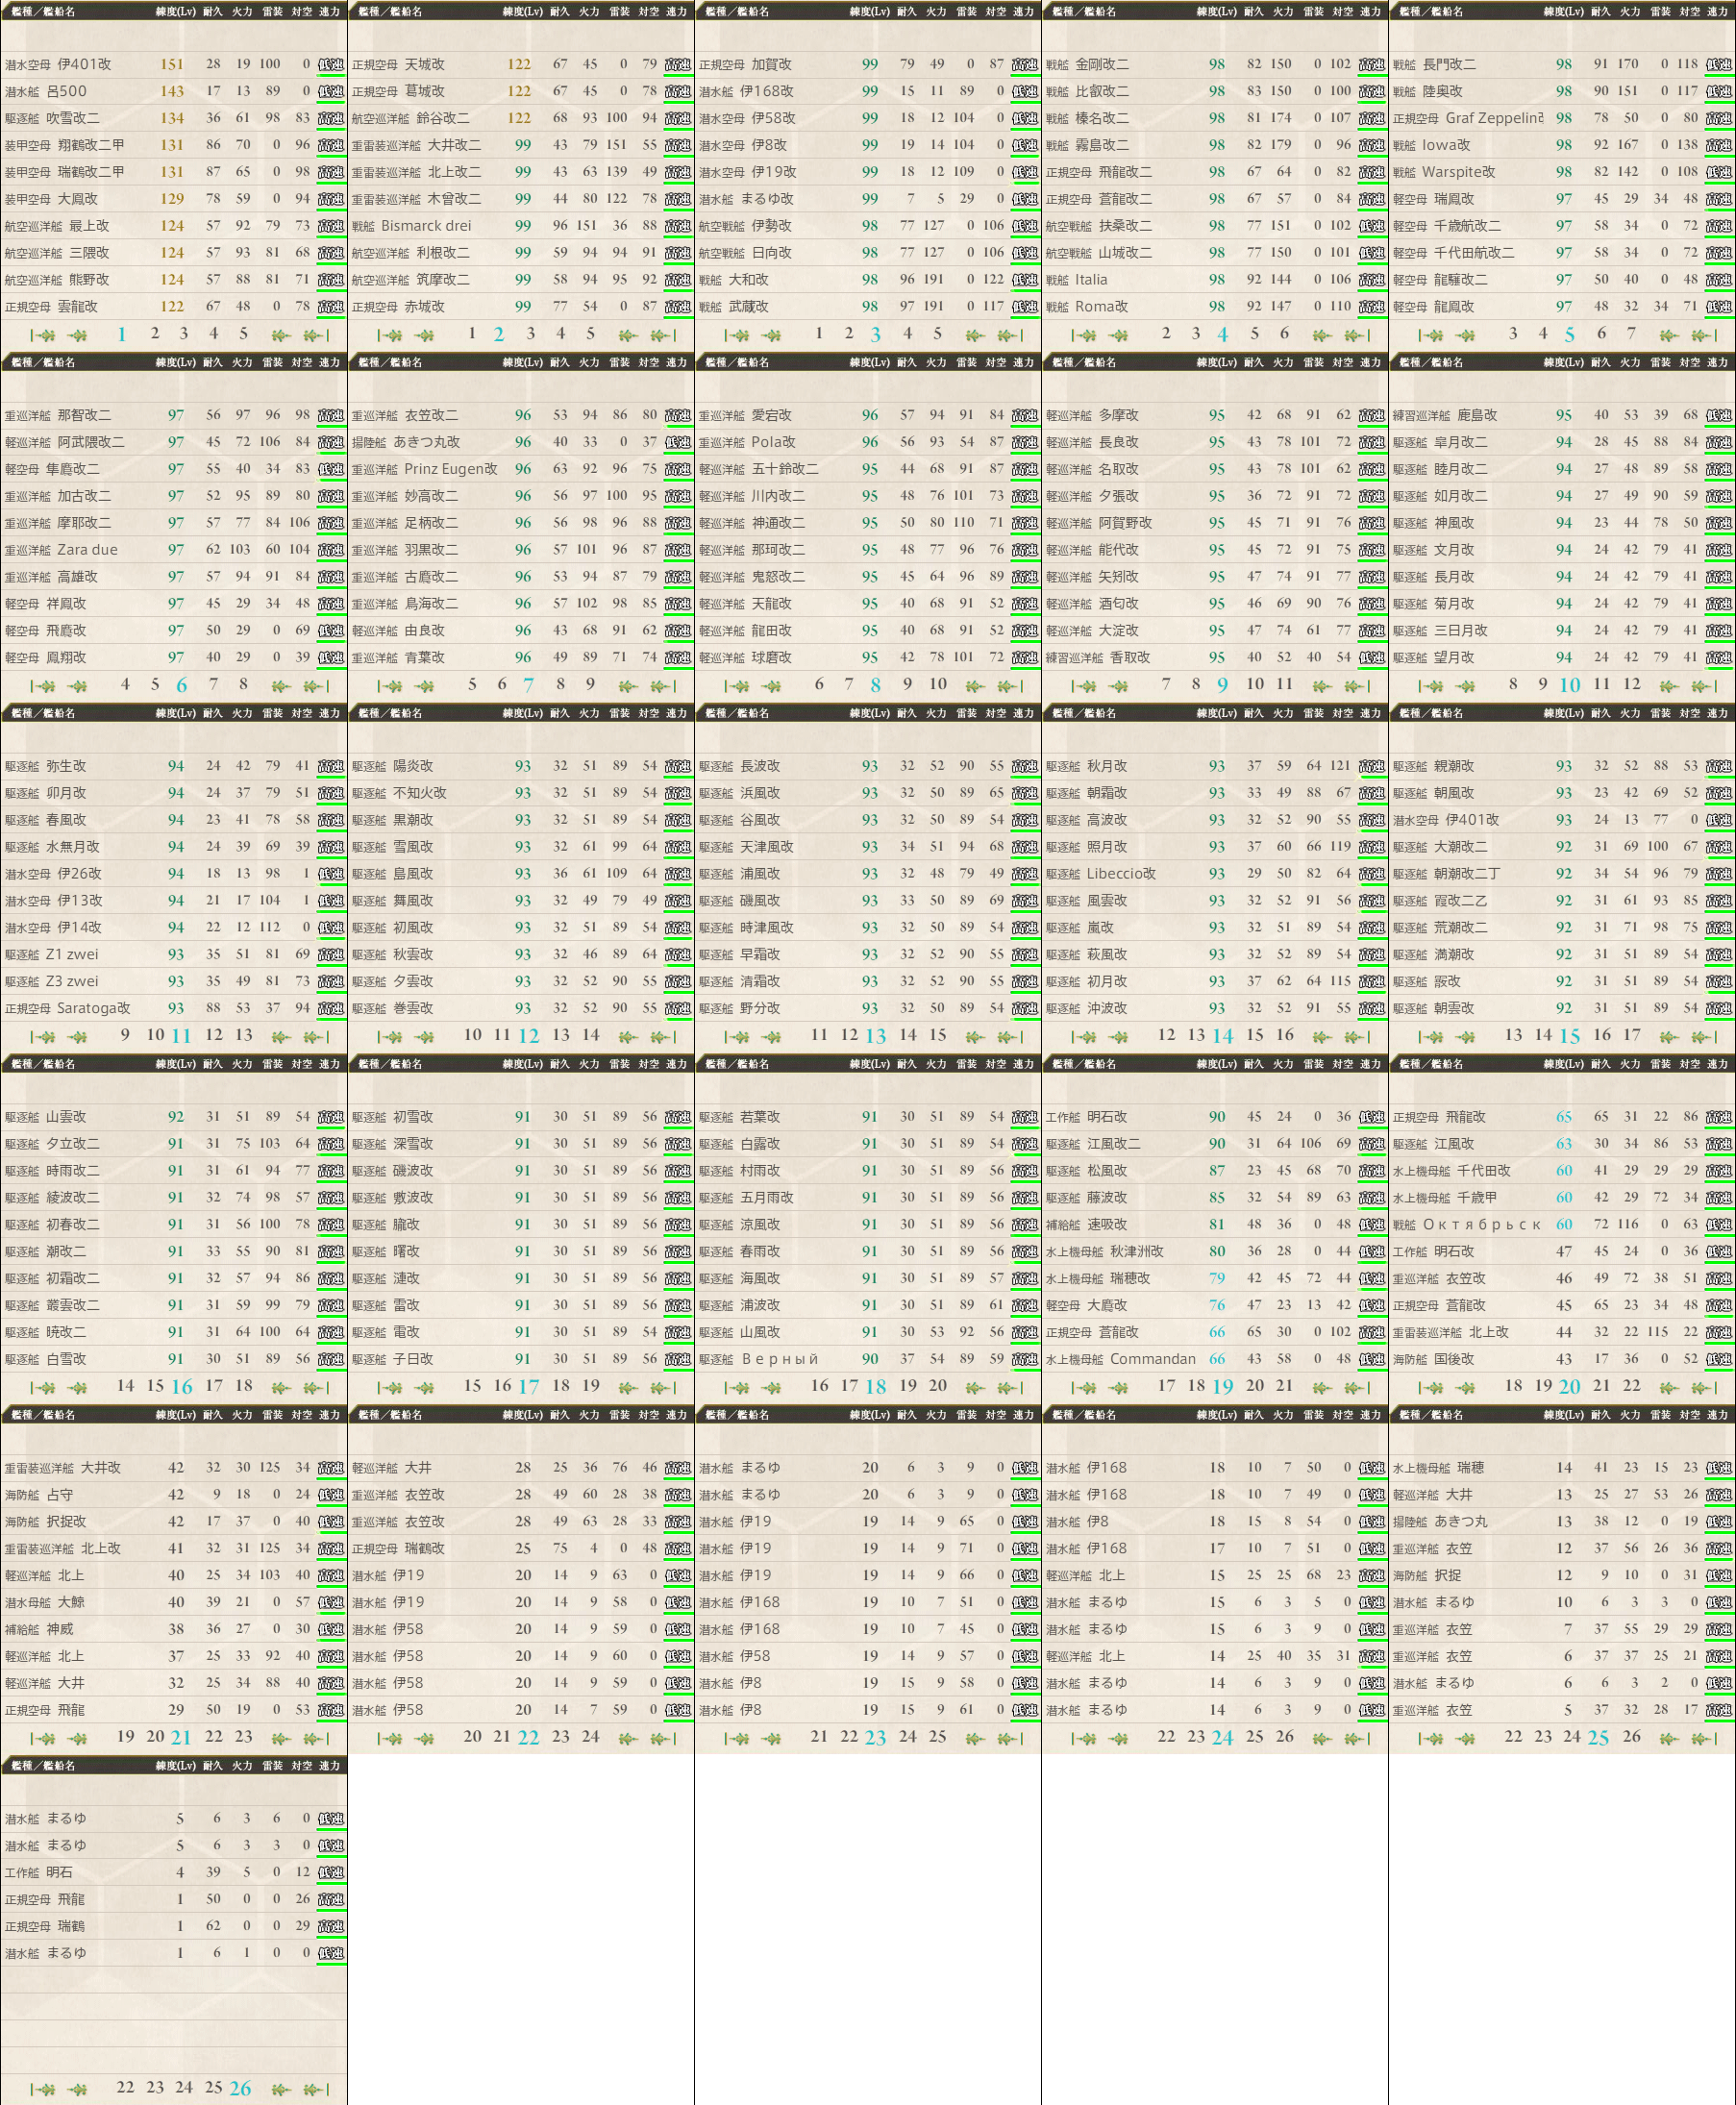 data.kancolle.levelsort.20170709.png